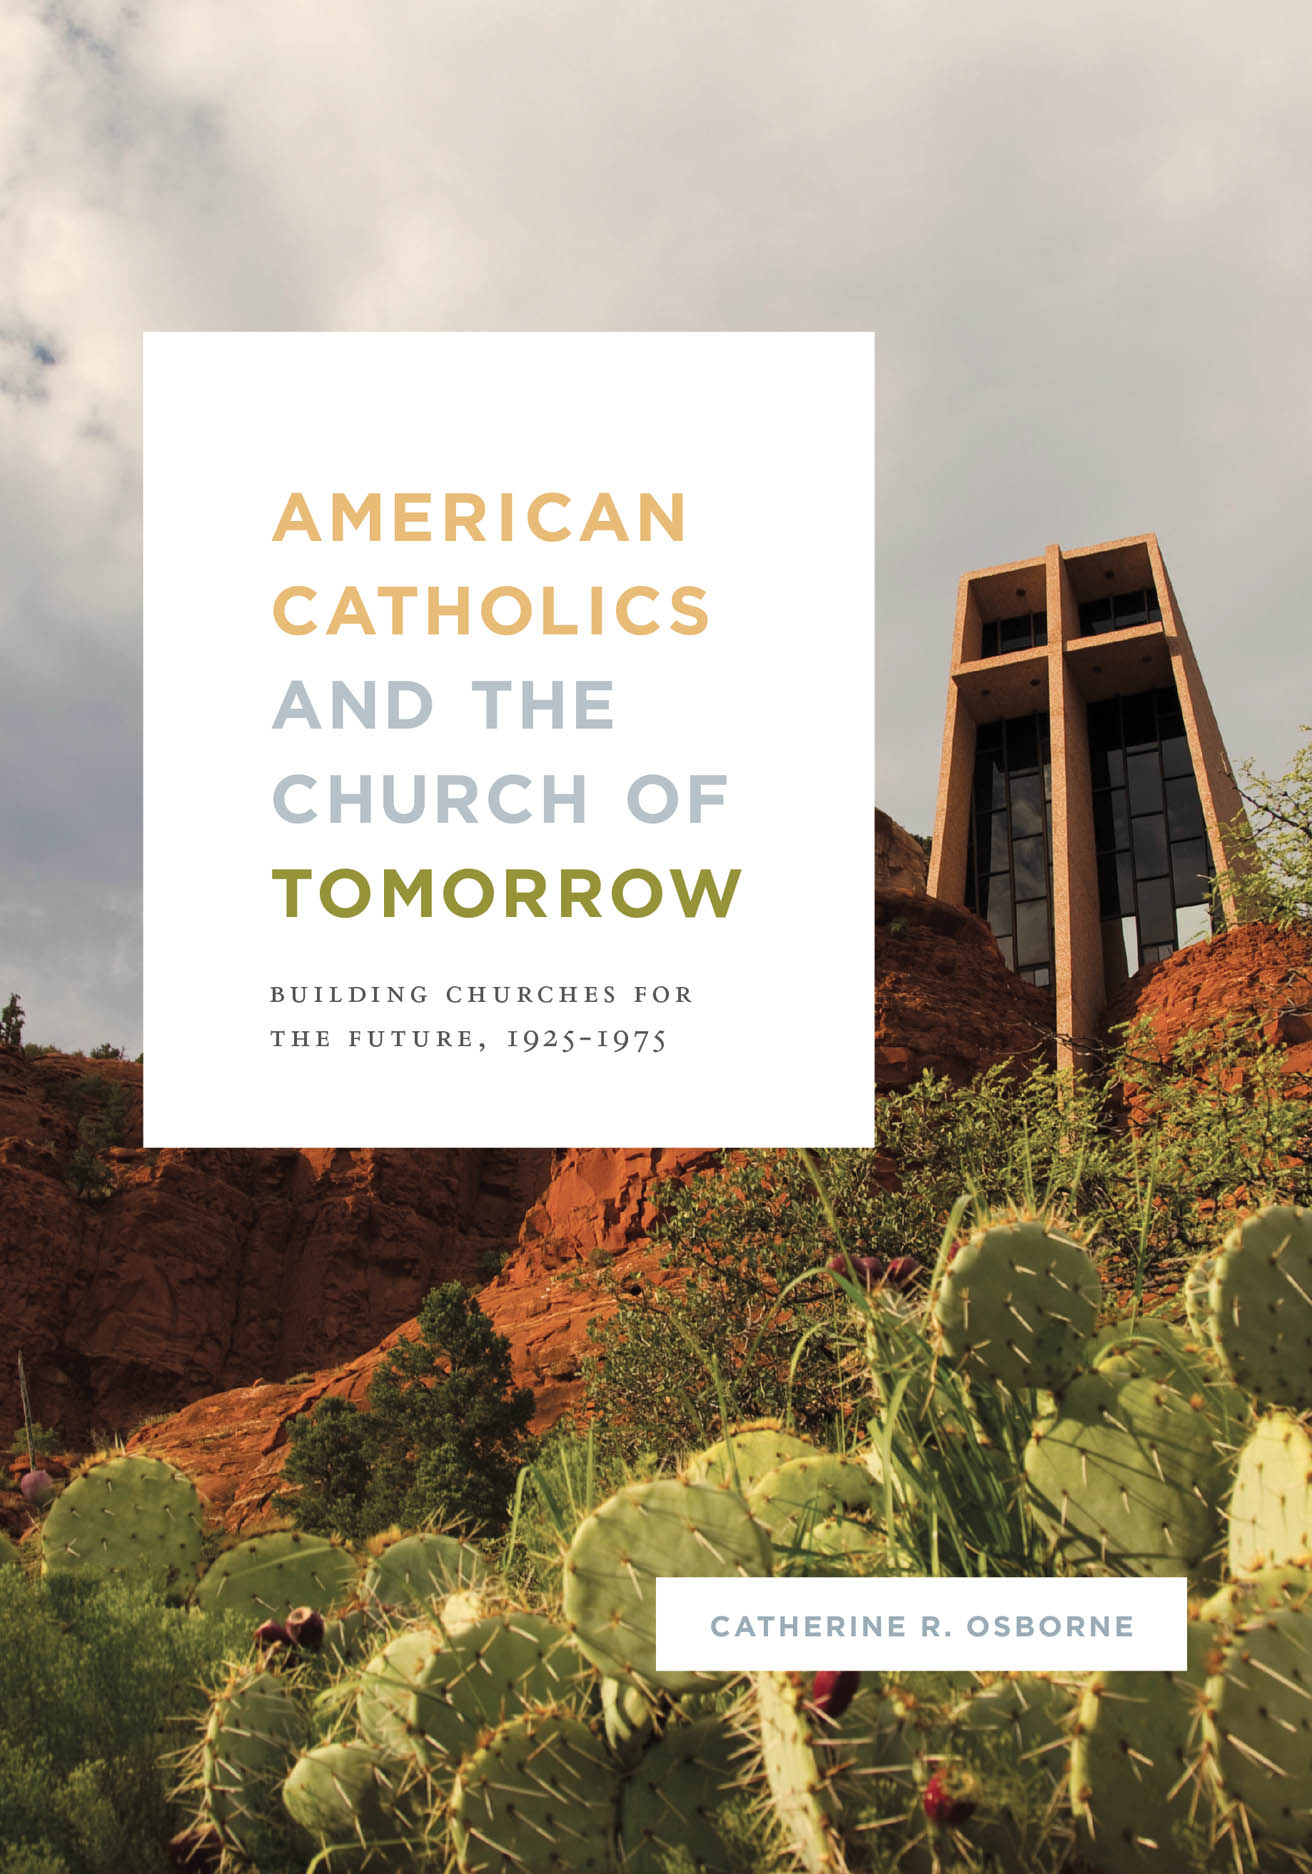 American Catholics and the Church of Tomorrow: Building Churches for the Future, 1925–1975